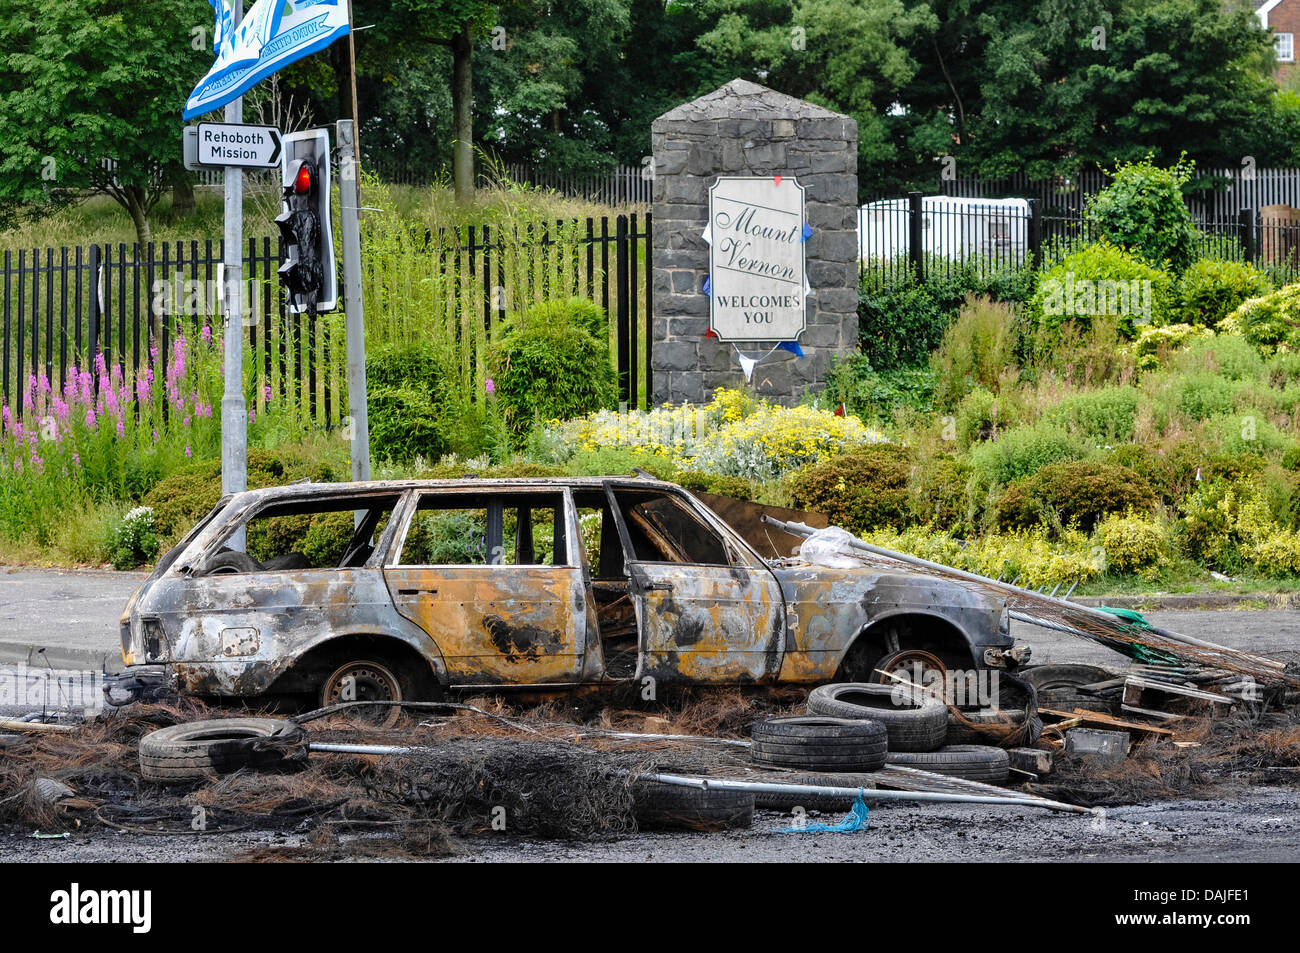 Belfast, Northern Ireland. 15th July 2013 - A burnt out car blocks the road at Mount Vernon following a night of - Stock Image